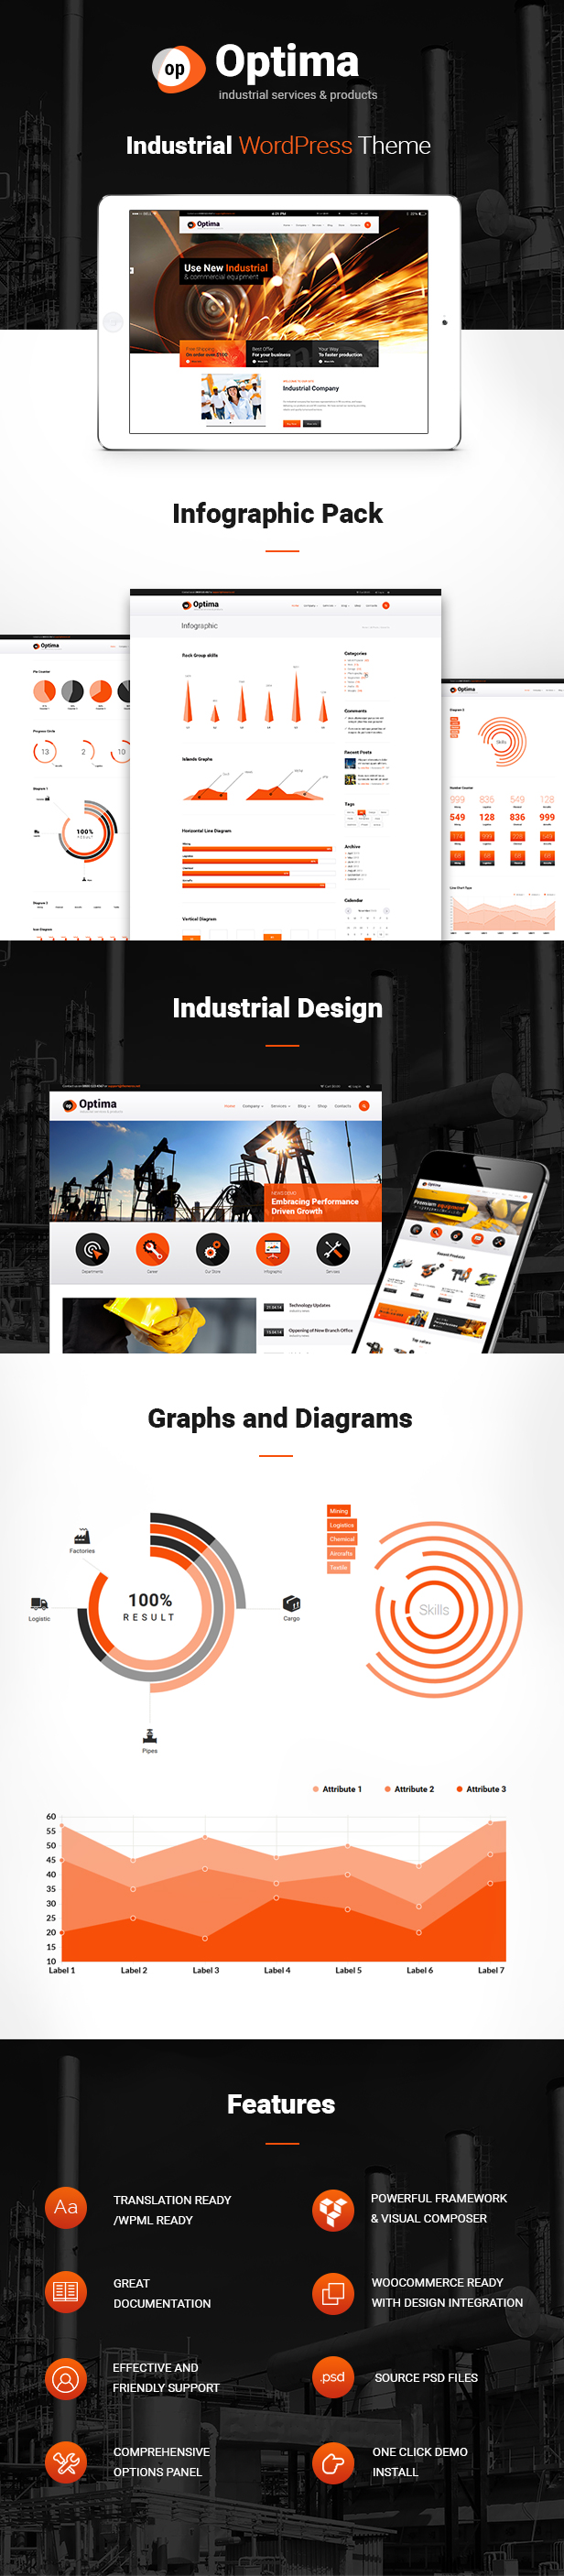 Industrial WordPress Theme features